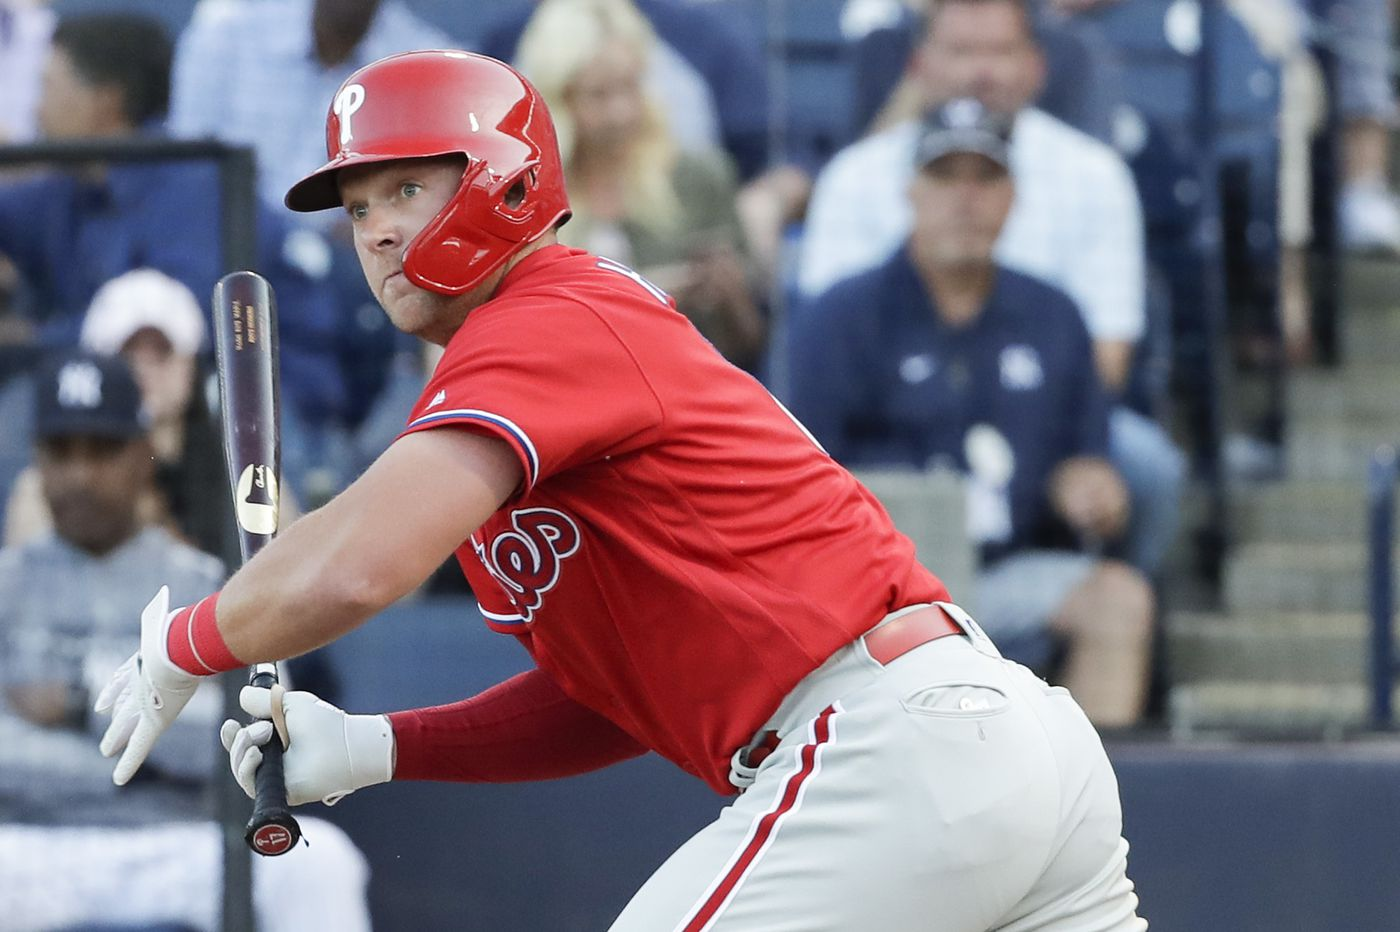 Rhys Hoskins dealing with sore shoulder but Phillies confident he'll be ready for opening day